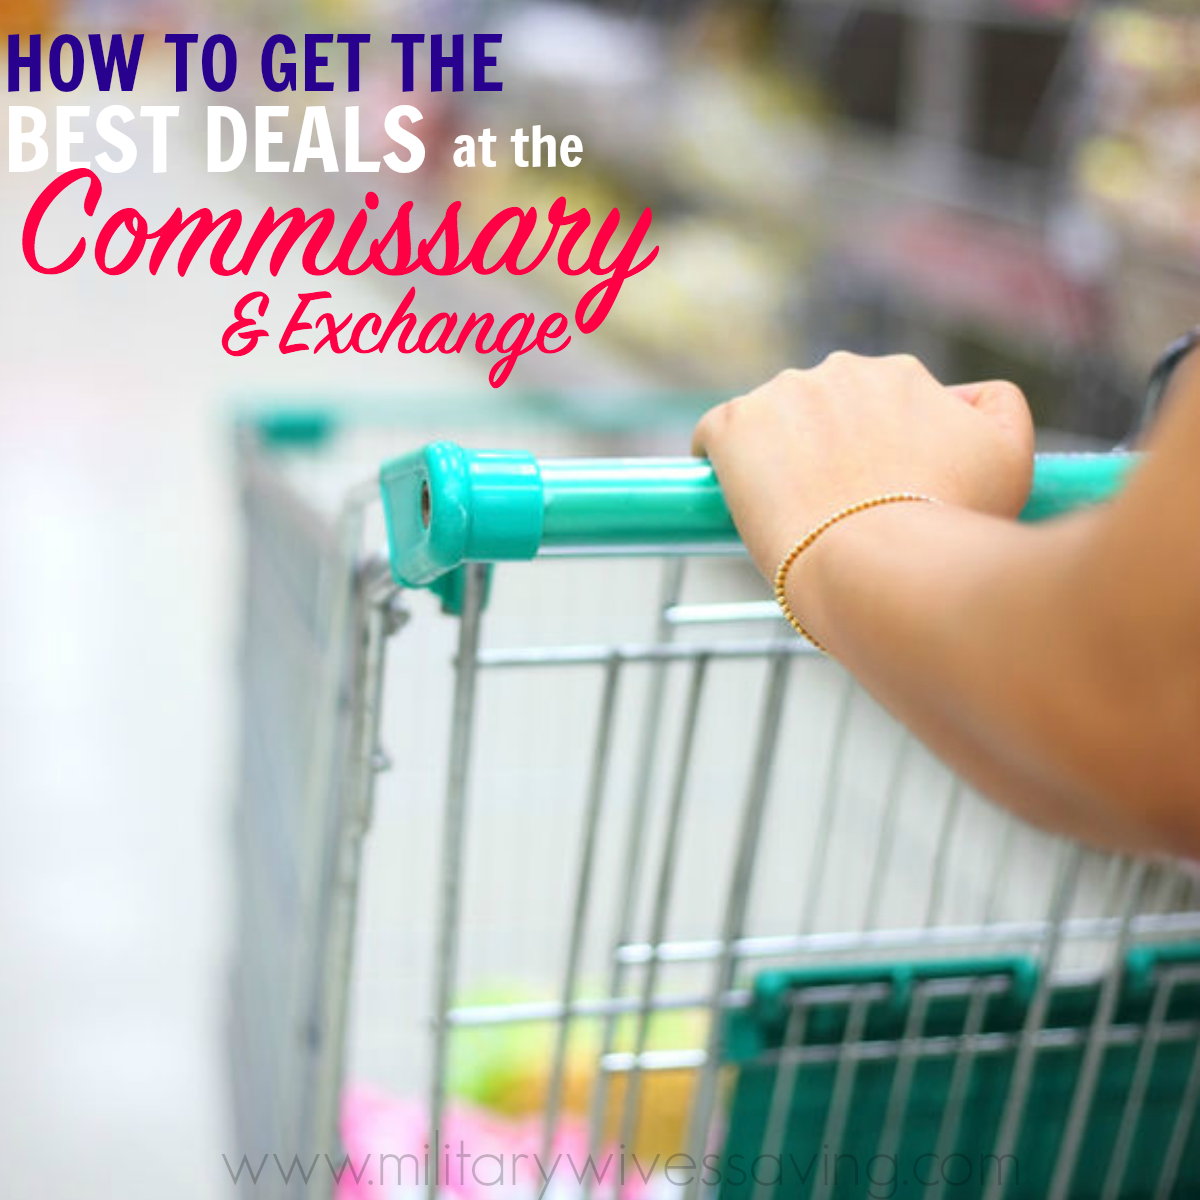 How To Get the Best Deals at the Commissary and Exchange